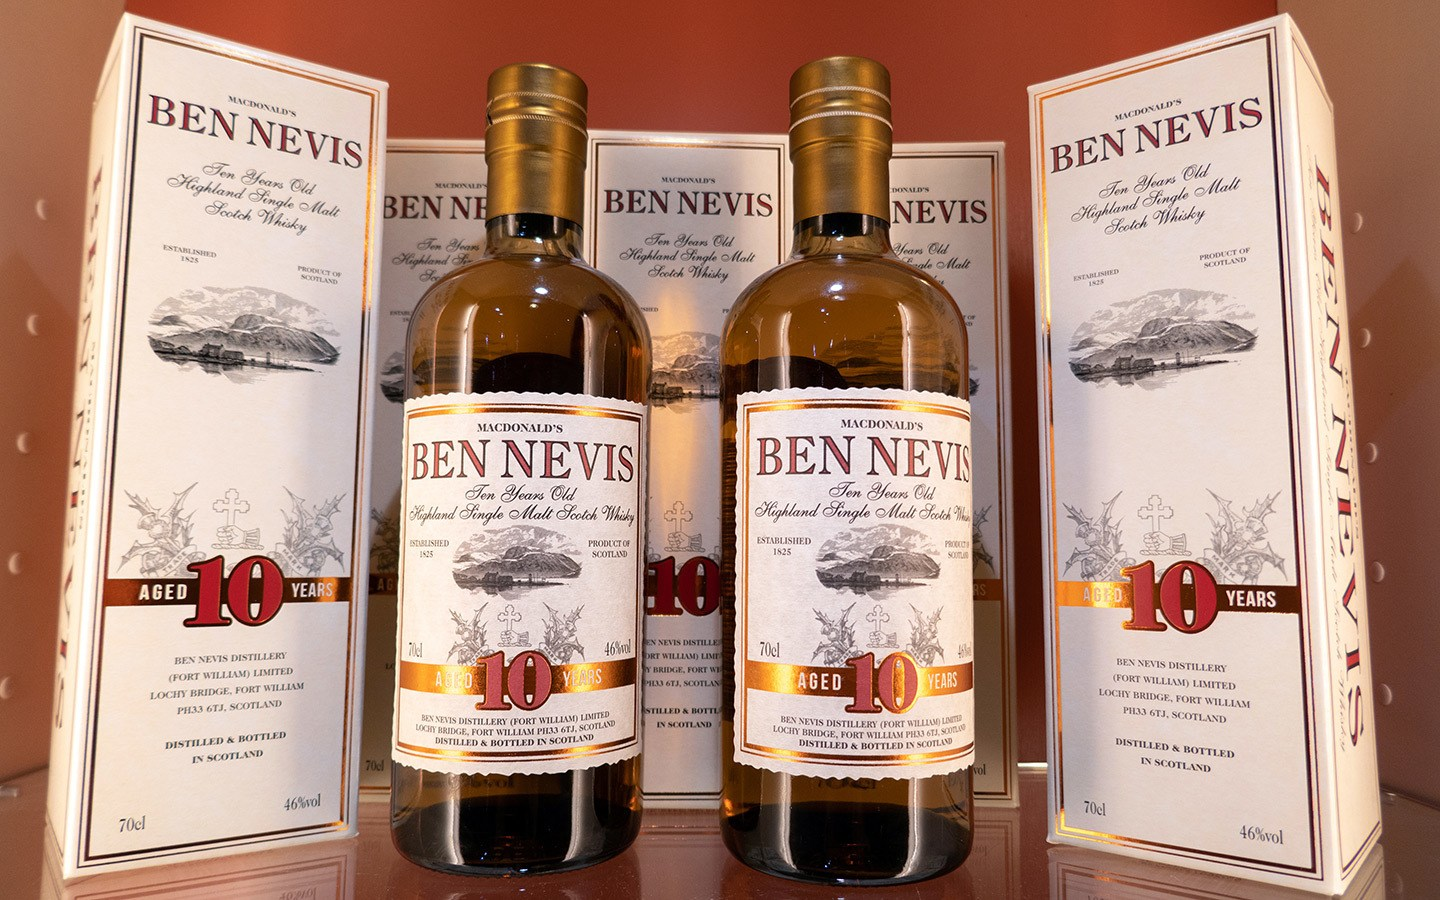 Whisky bottles at the the Ben Nevis Distillery in Fort William, Scotland